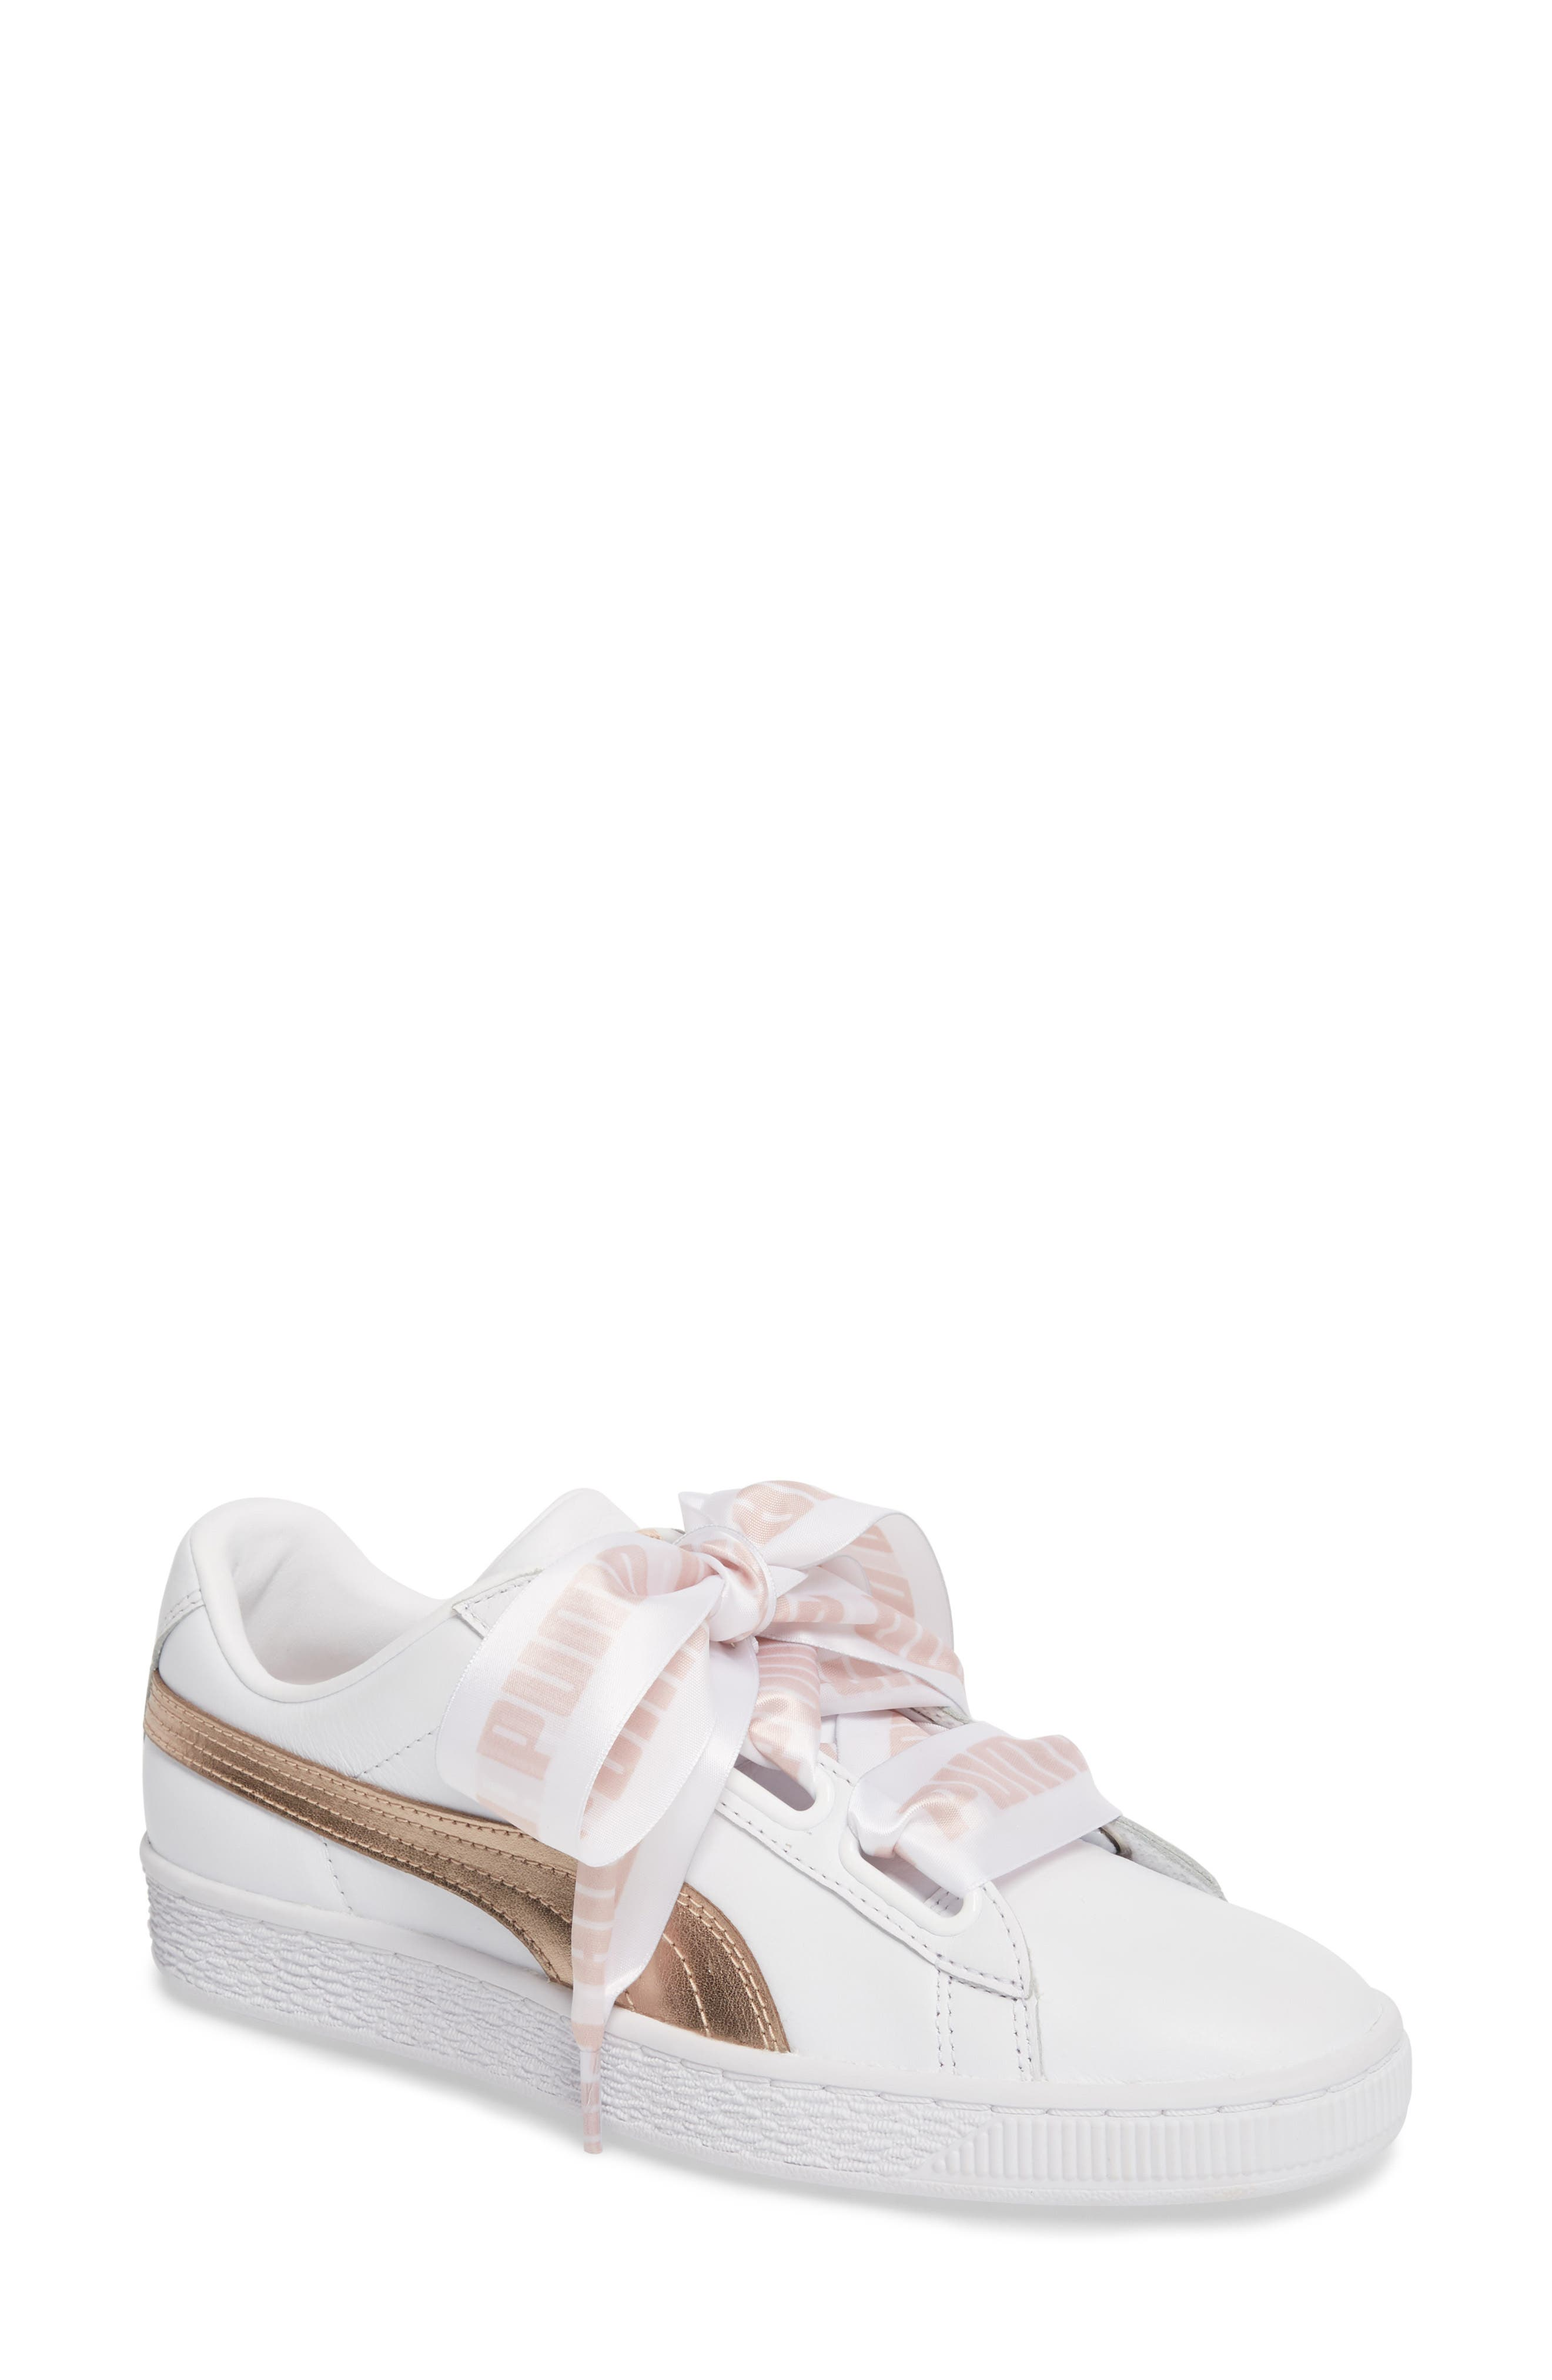 Basket Heart Sneaker, Main, color, WHITE/ ROSE GOLD LEATHER